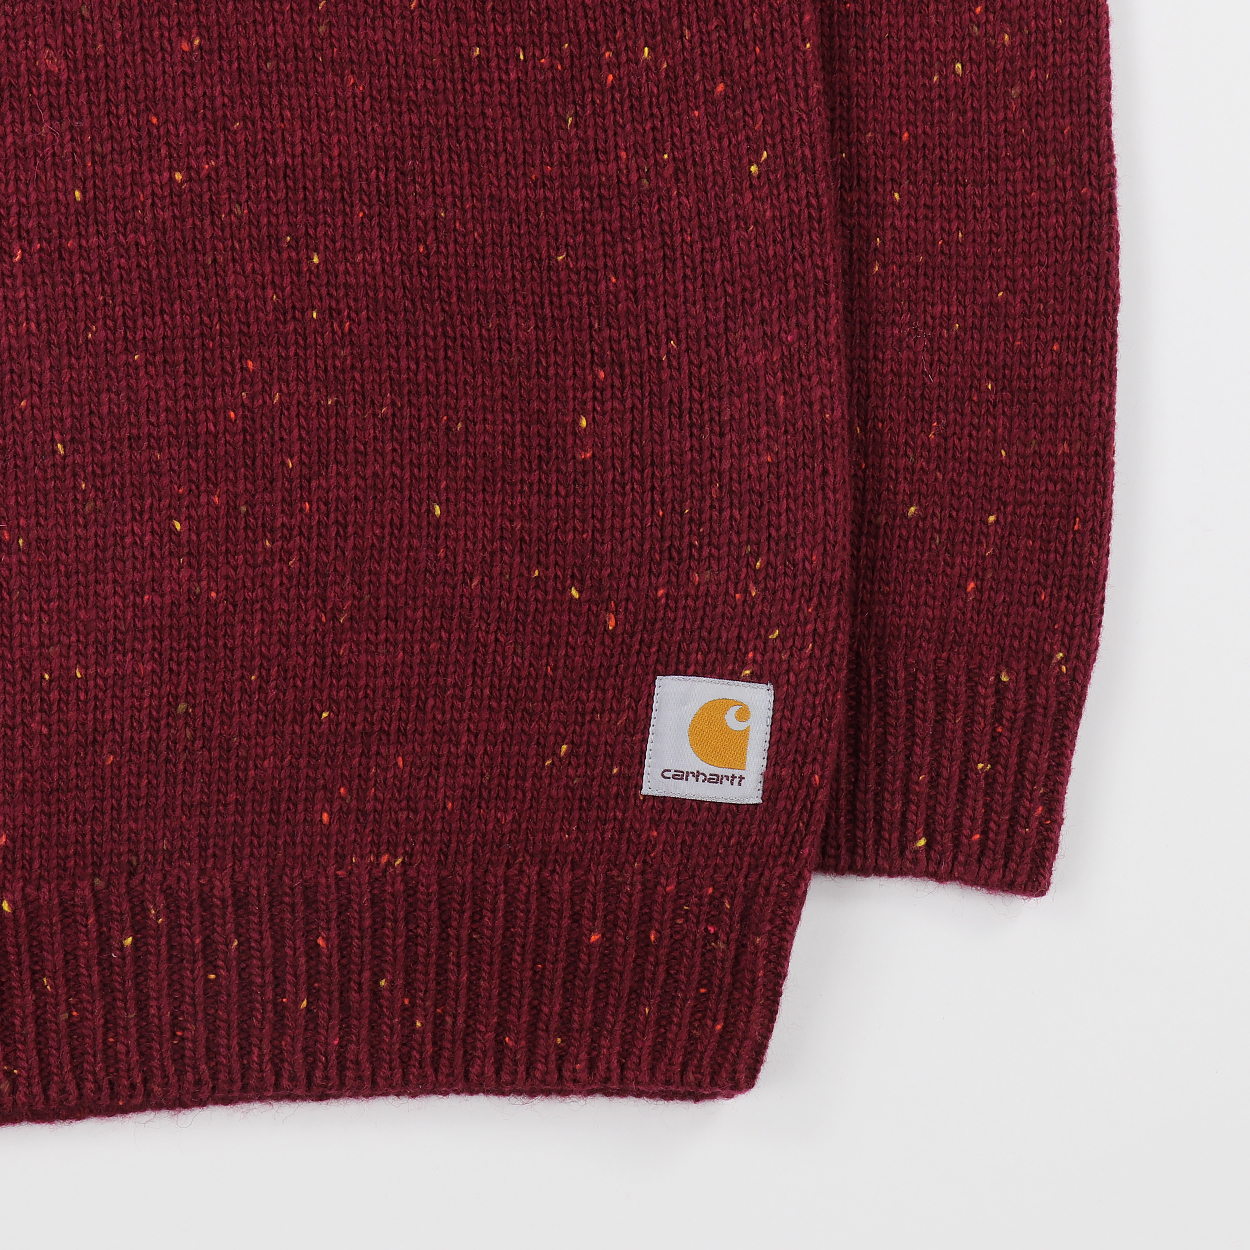 c252622bdf6cd A sweater from Carhartt WIP made from a blend of wool with cotton and  acrylic. The knitted design has raglan sleeves